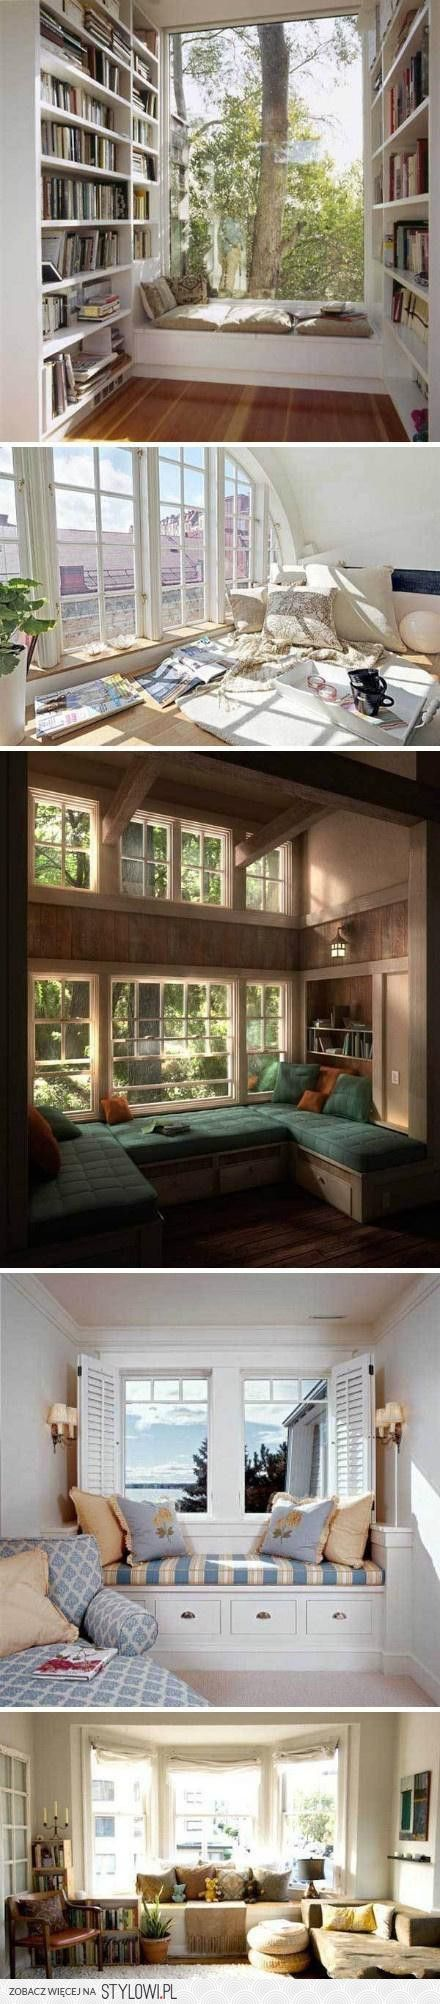 Wykusz Rulez:u003e · Window SeatsWindow BenchesArchitecture Interior  DesignApartment Interior DesignBook StuffSweet HomeSweet SweetLiving Room  ...